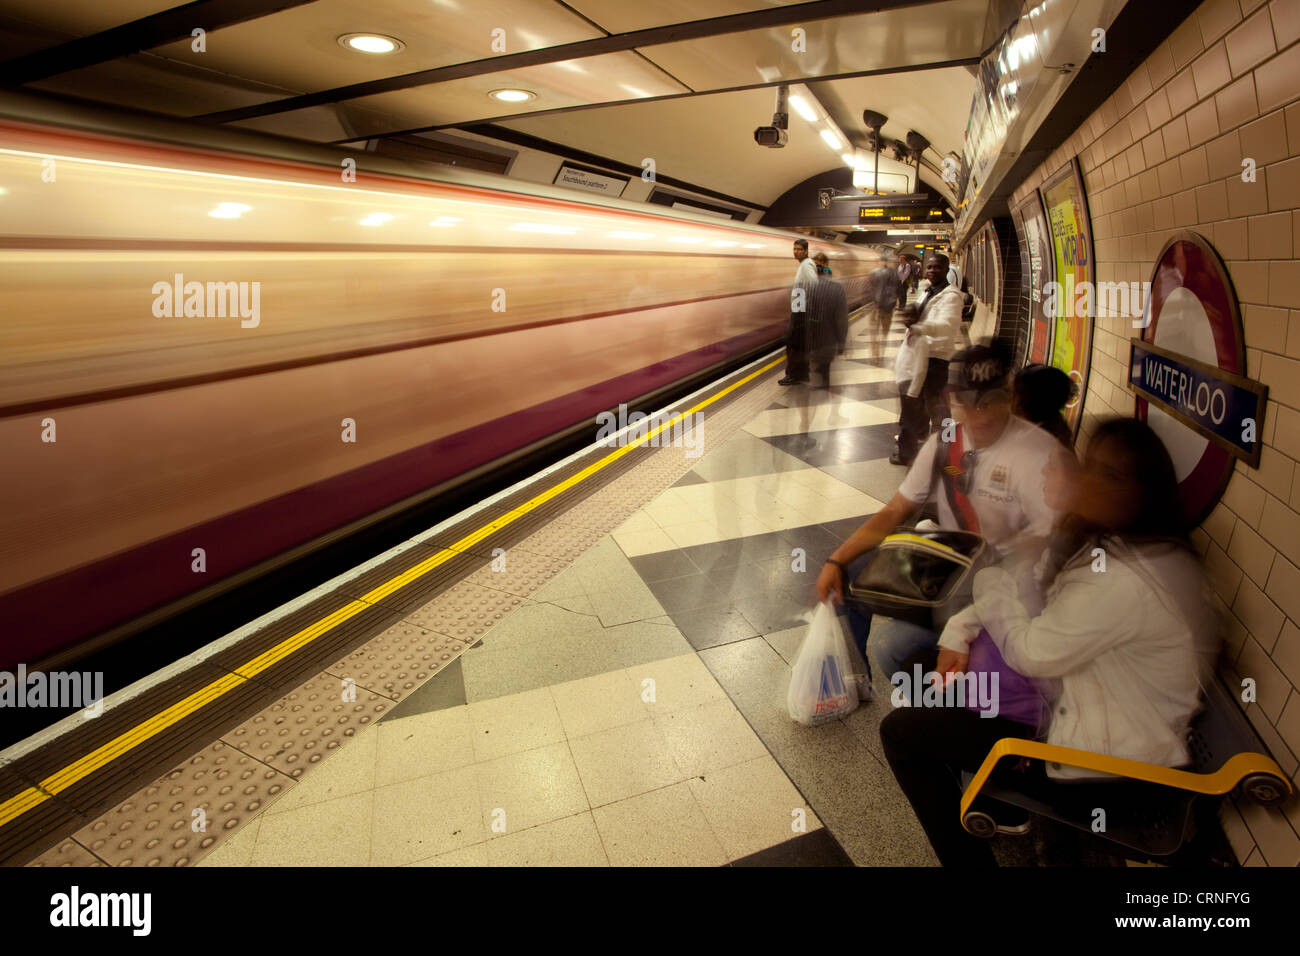 A Northern line tube train passing through Waterloo underground station. - Stock Image